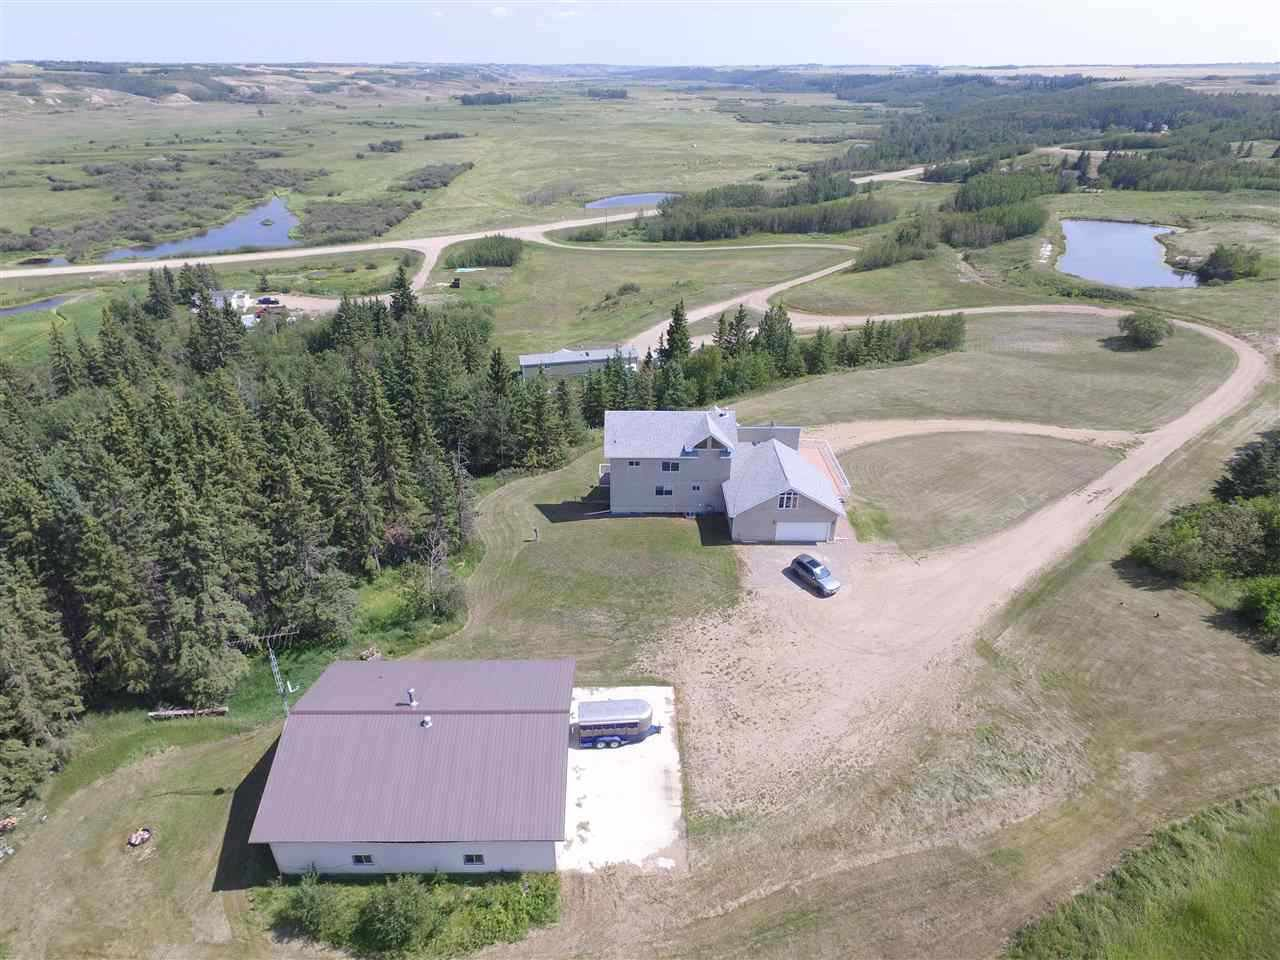 Photo 30: Photos: 462082B Hwy 822: Rural Wetaskiwin County House for sale : MLS®# E4170309